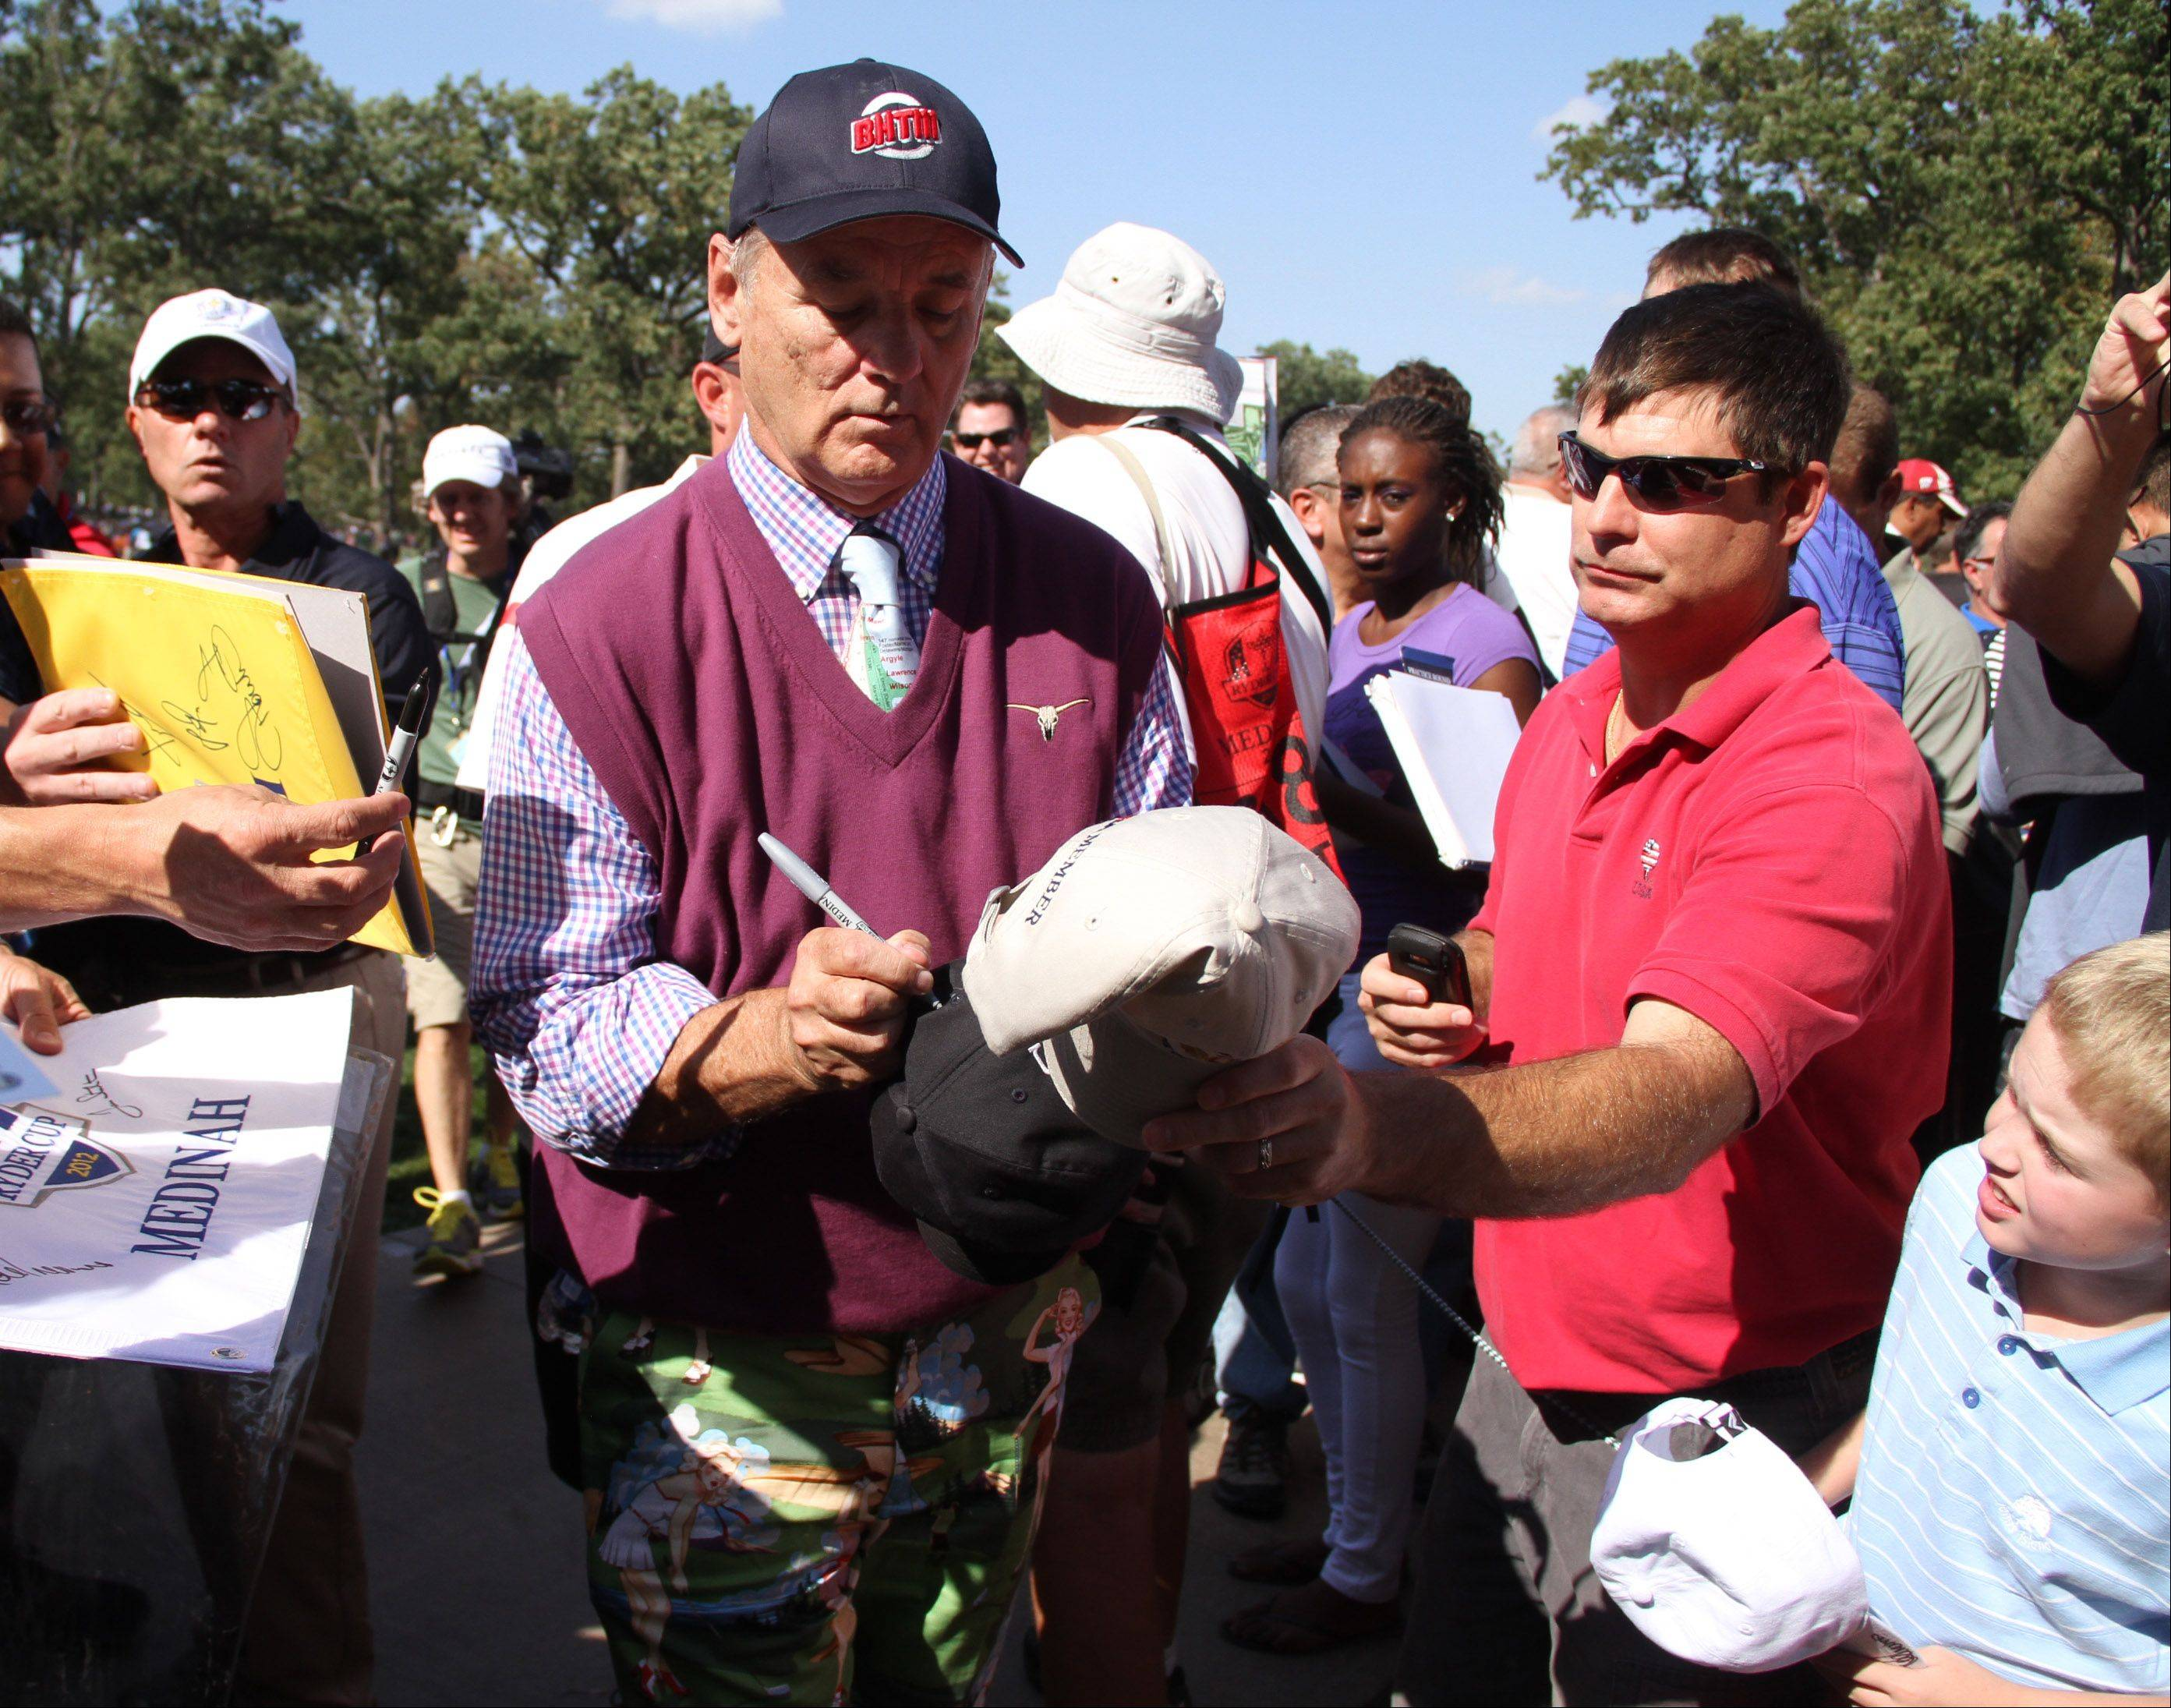 Bill Murray signs autographs while walking the course.